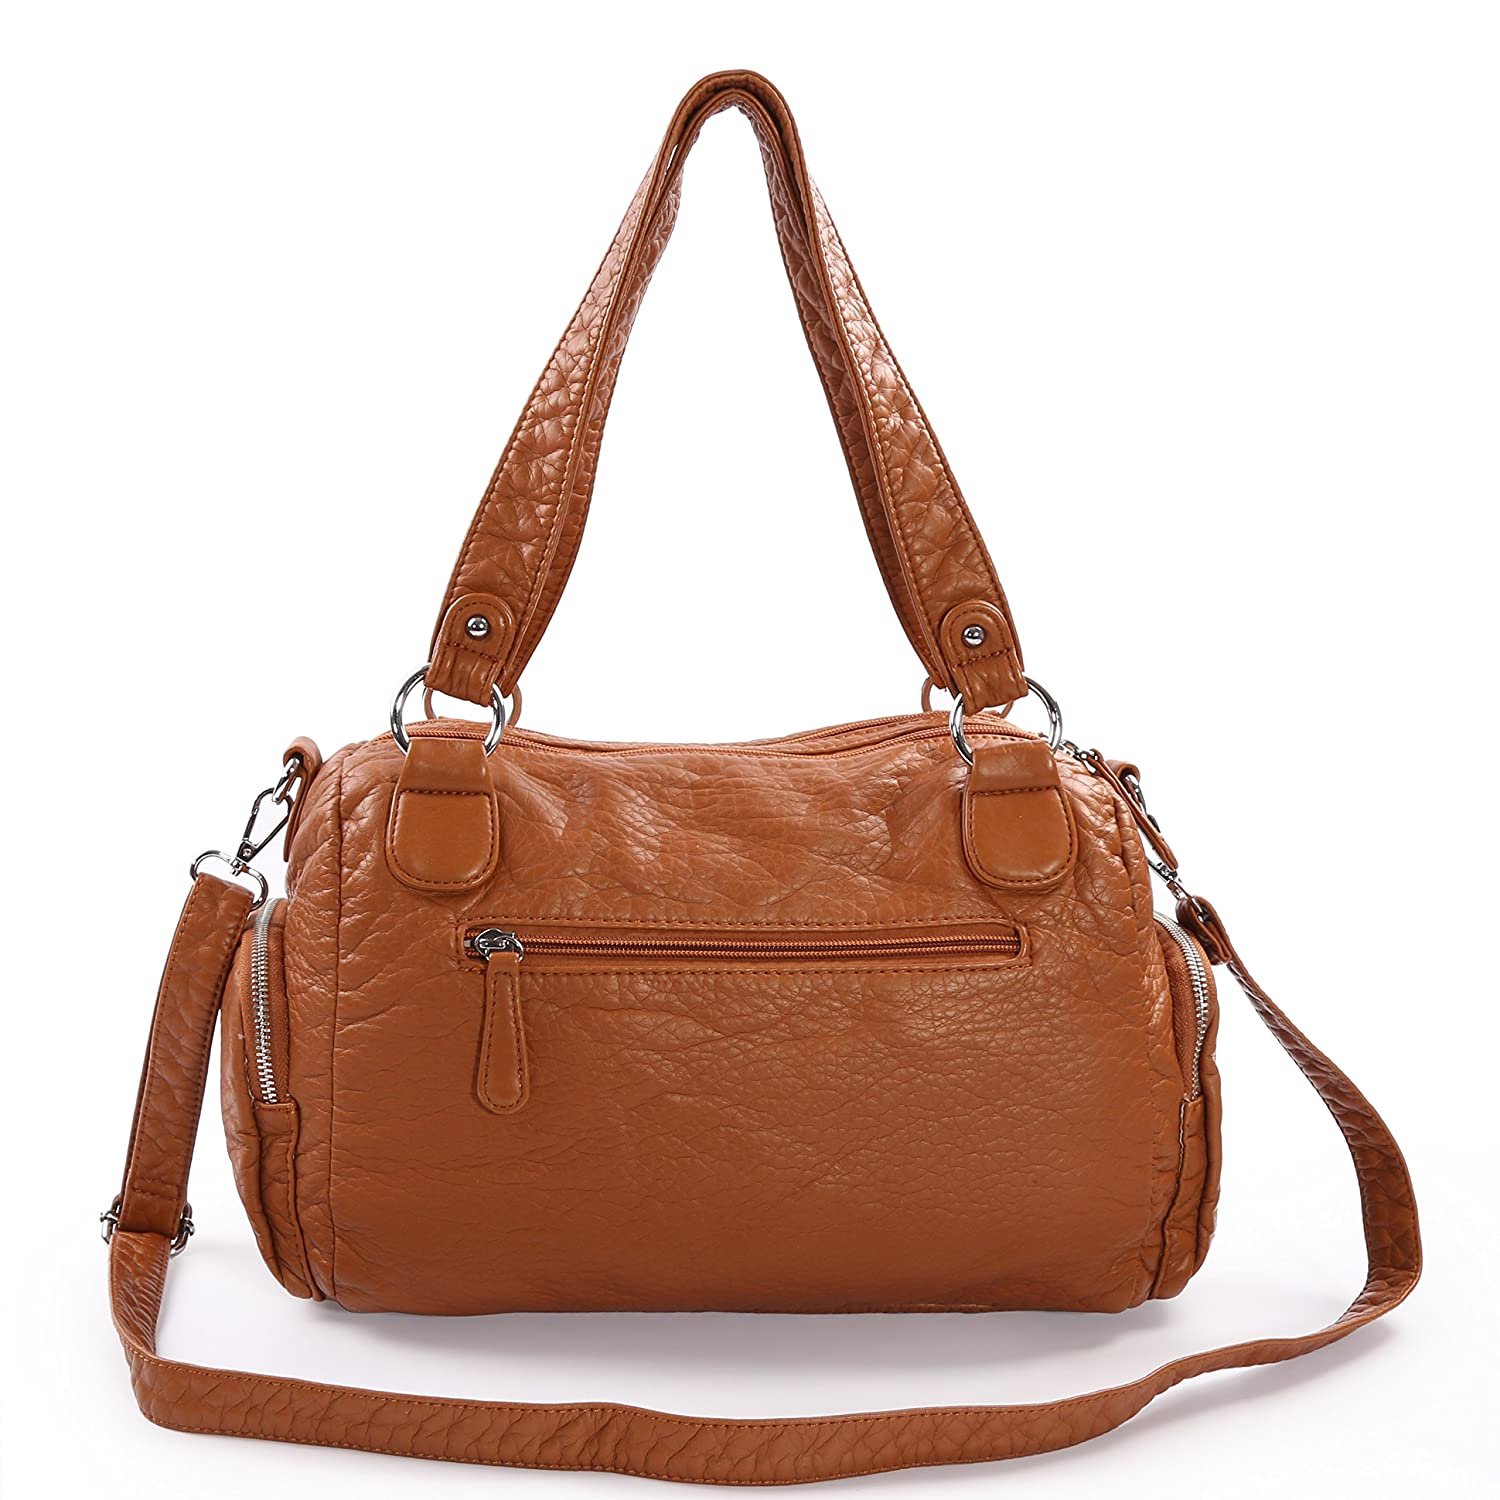 d3bce6ec55 Purses and Handbags - Angel kiss Women's Tote Handbag Water Resistant  Washed PU Leather Shoulder Messenger Bag With 2 Separated Compartments  (brown-2): ...